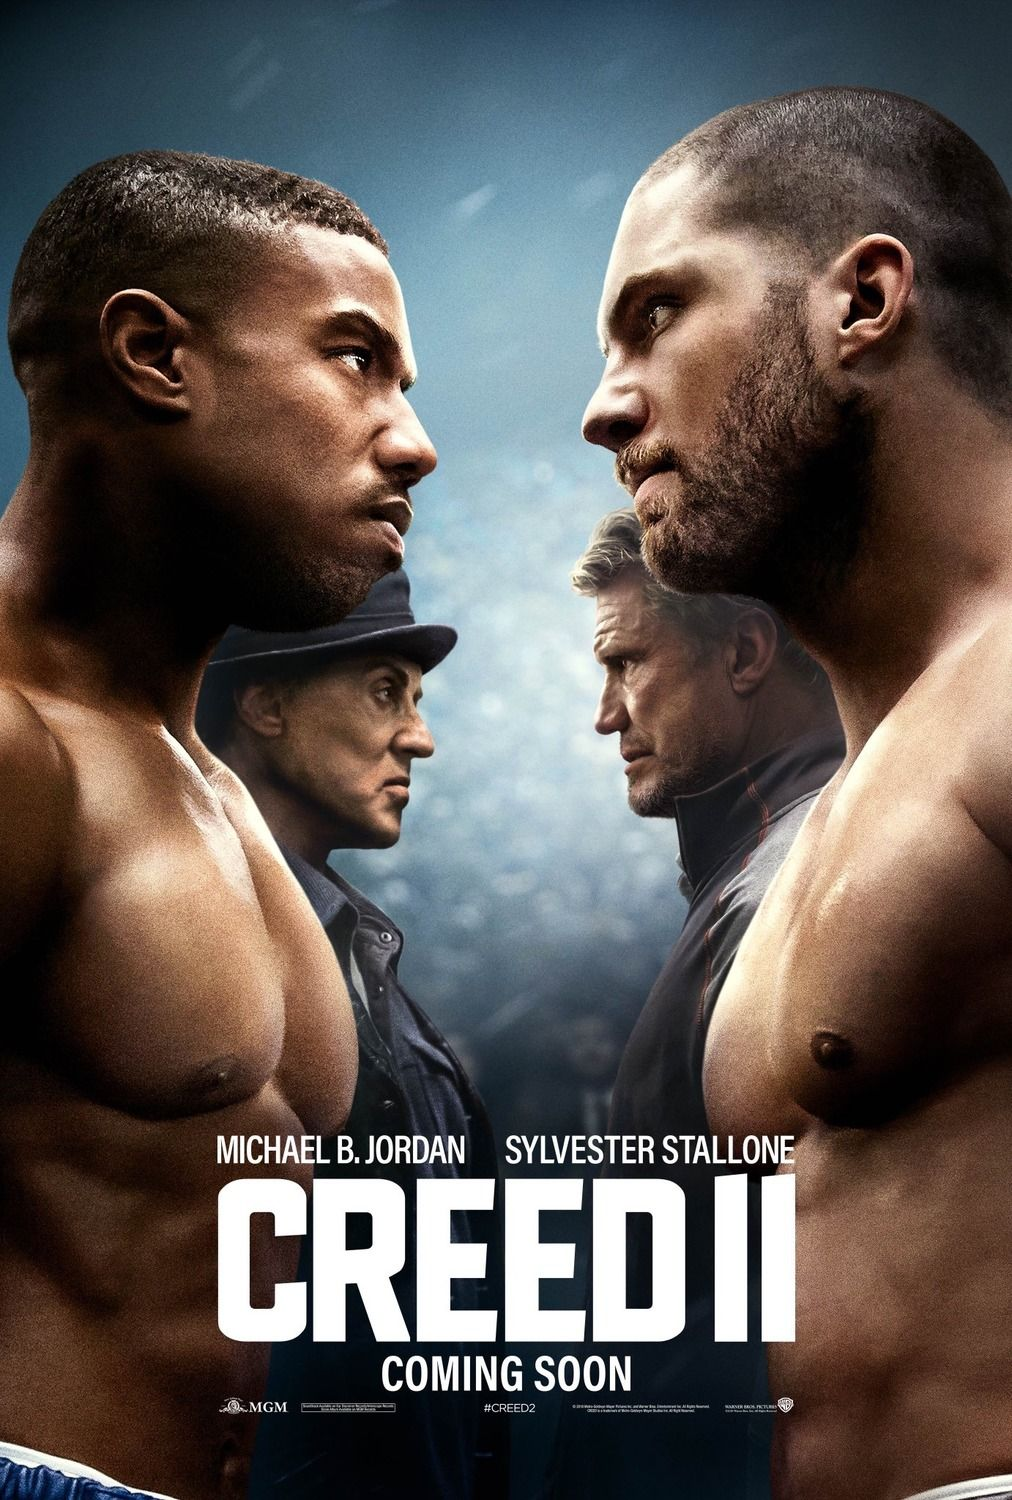 Pin De Julio Augusto Em Creed Em 2020 Filme Creed Stallone